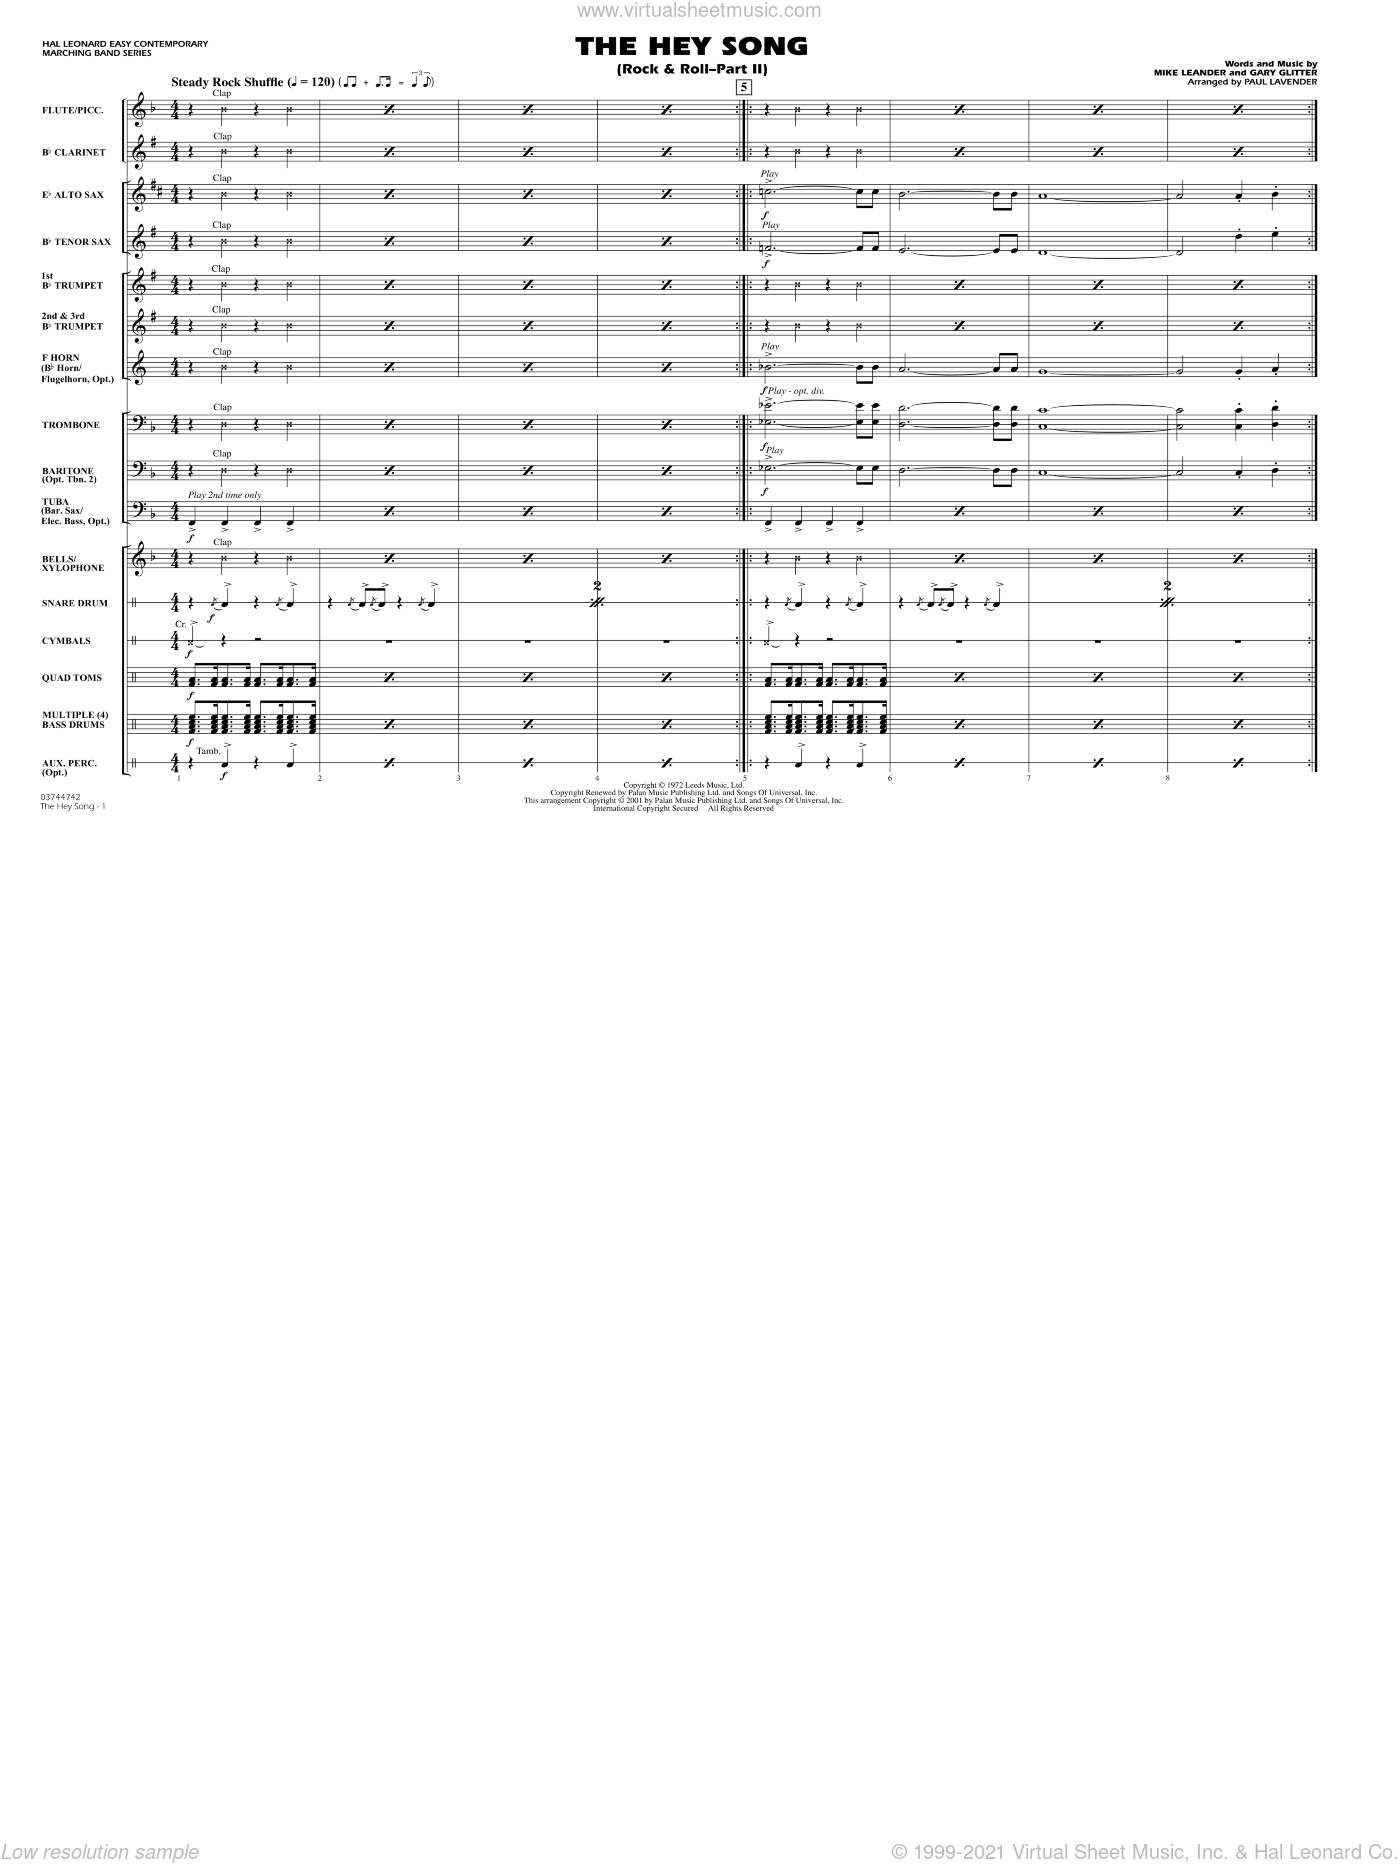 Roll, part ii (the hey song) sheet music for marching band (full score) by Mike Leander